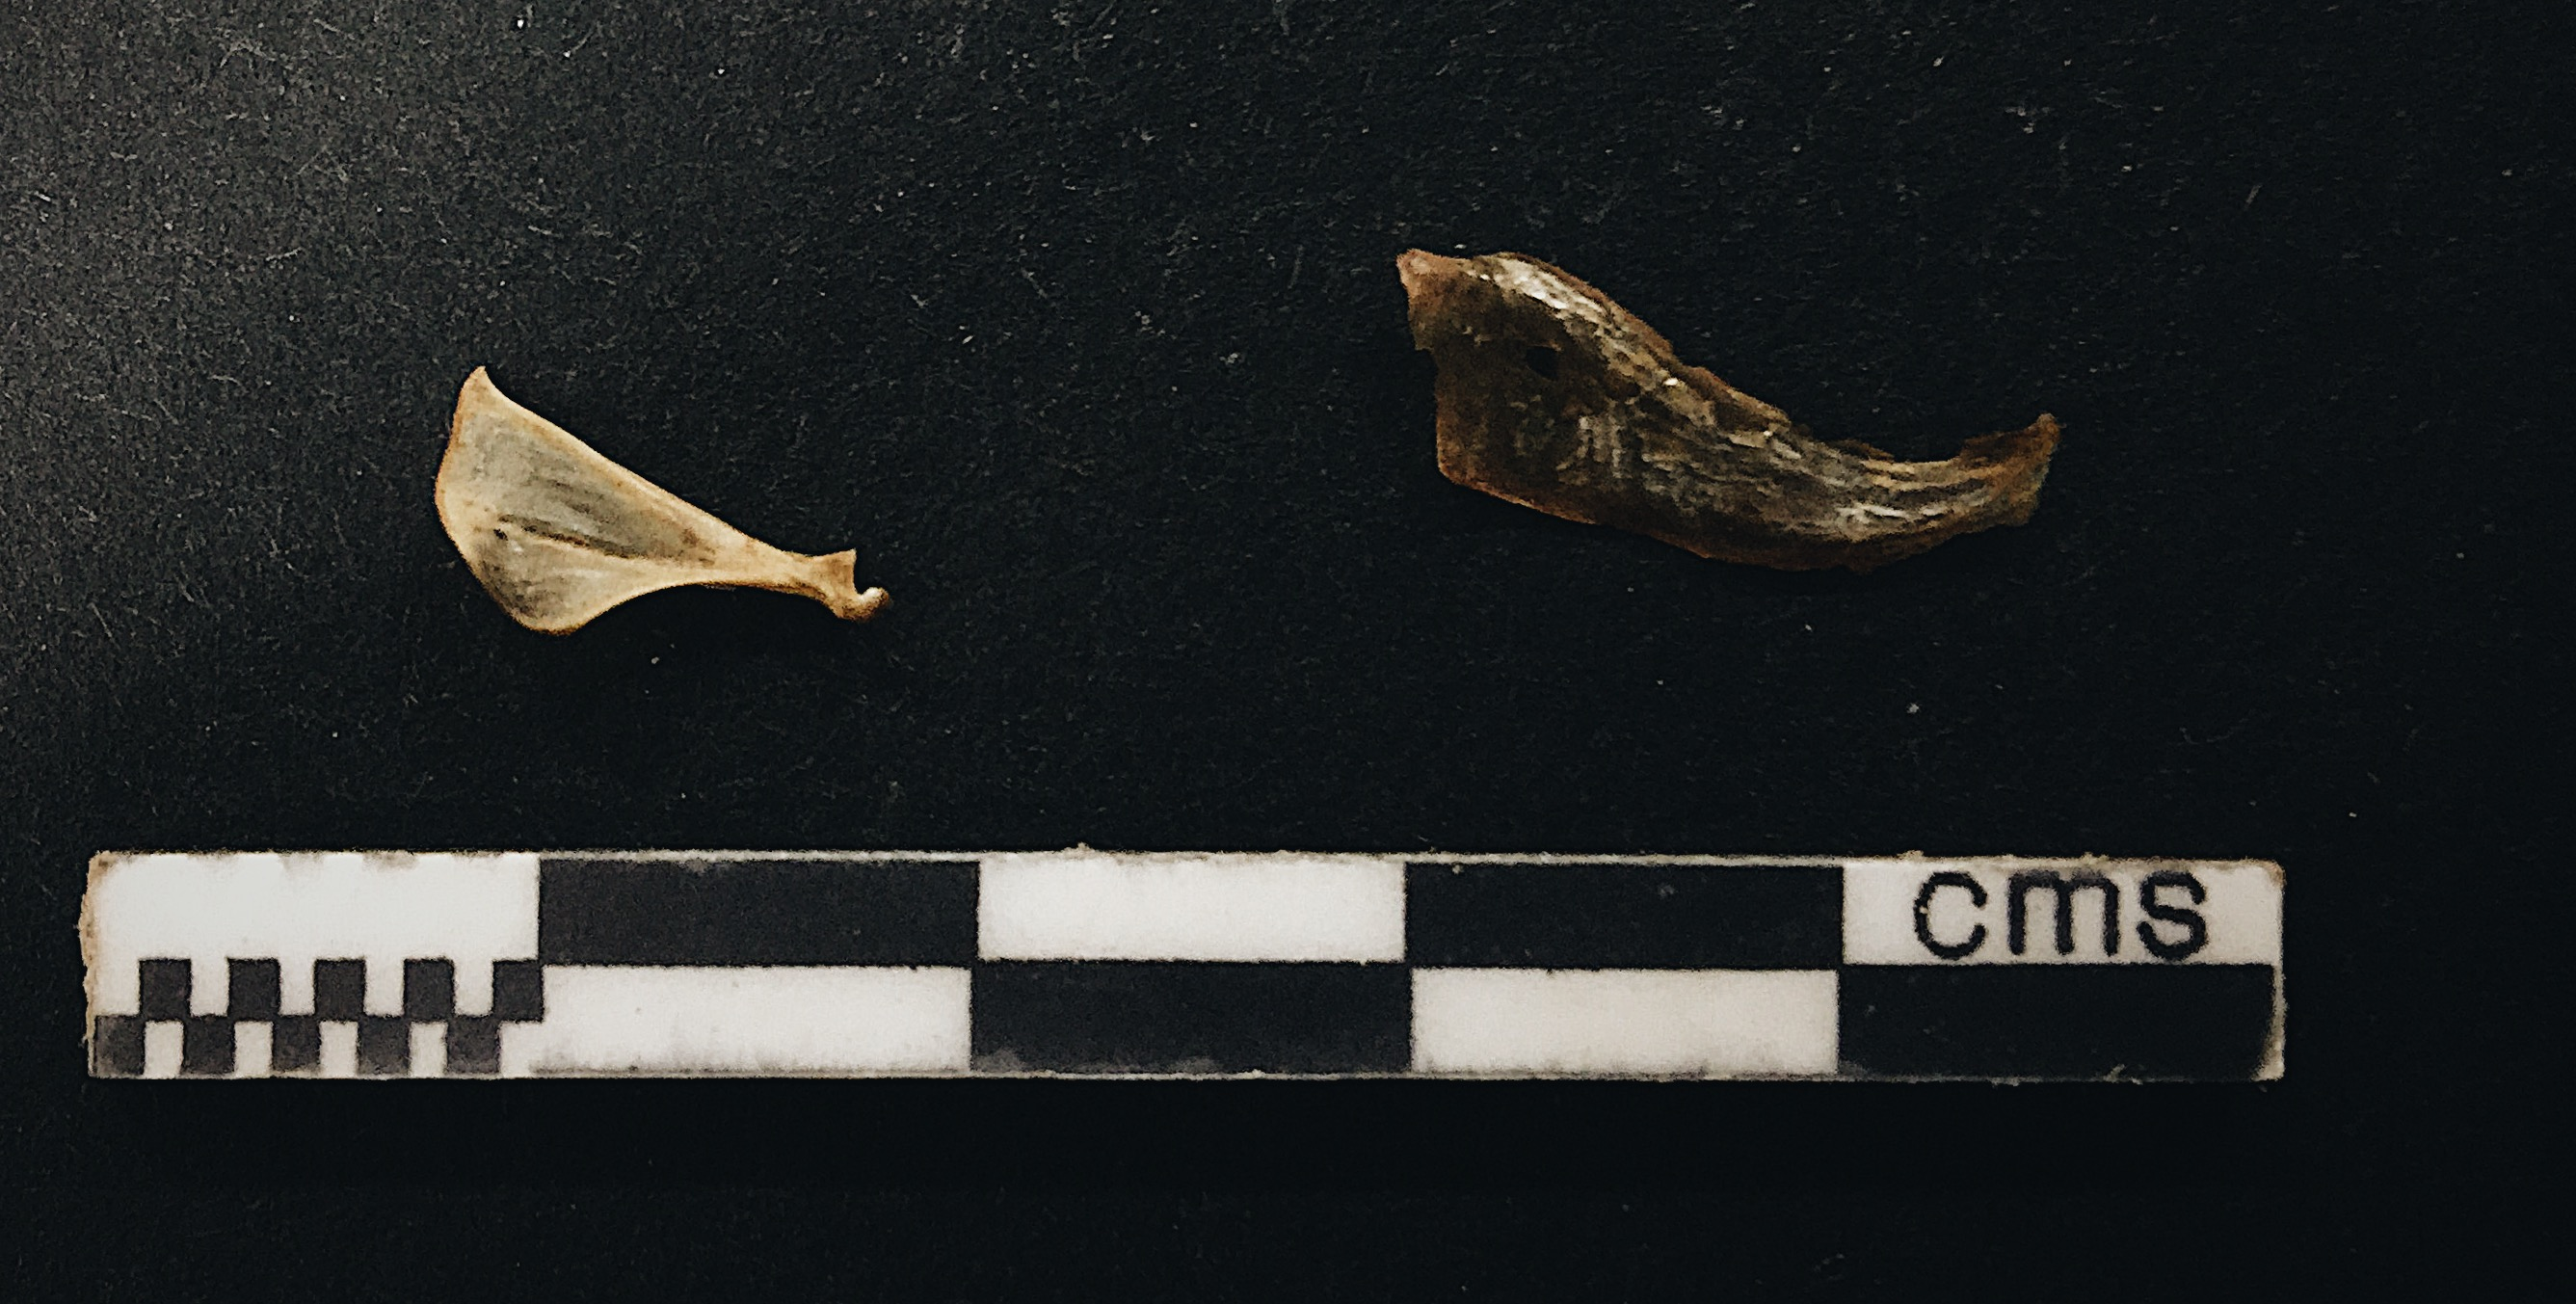 Mouse scapula and herring fragment